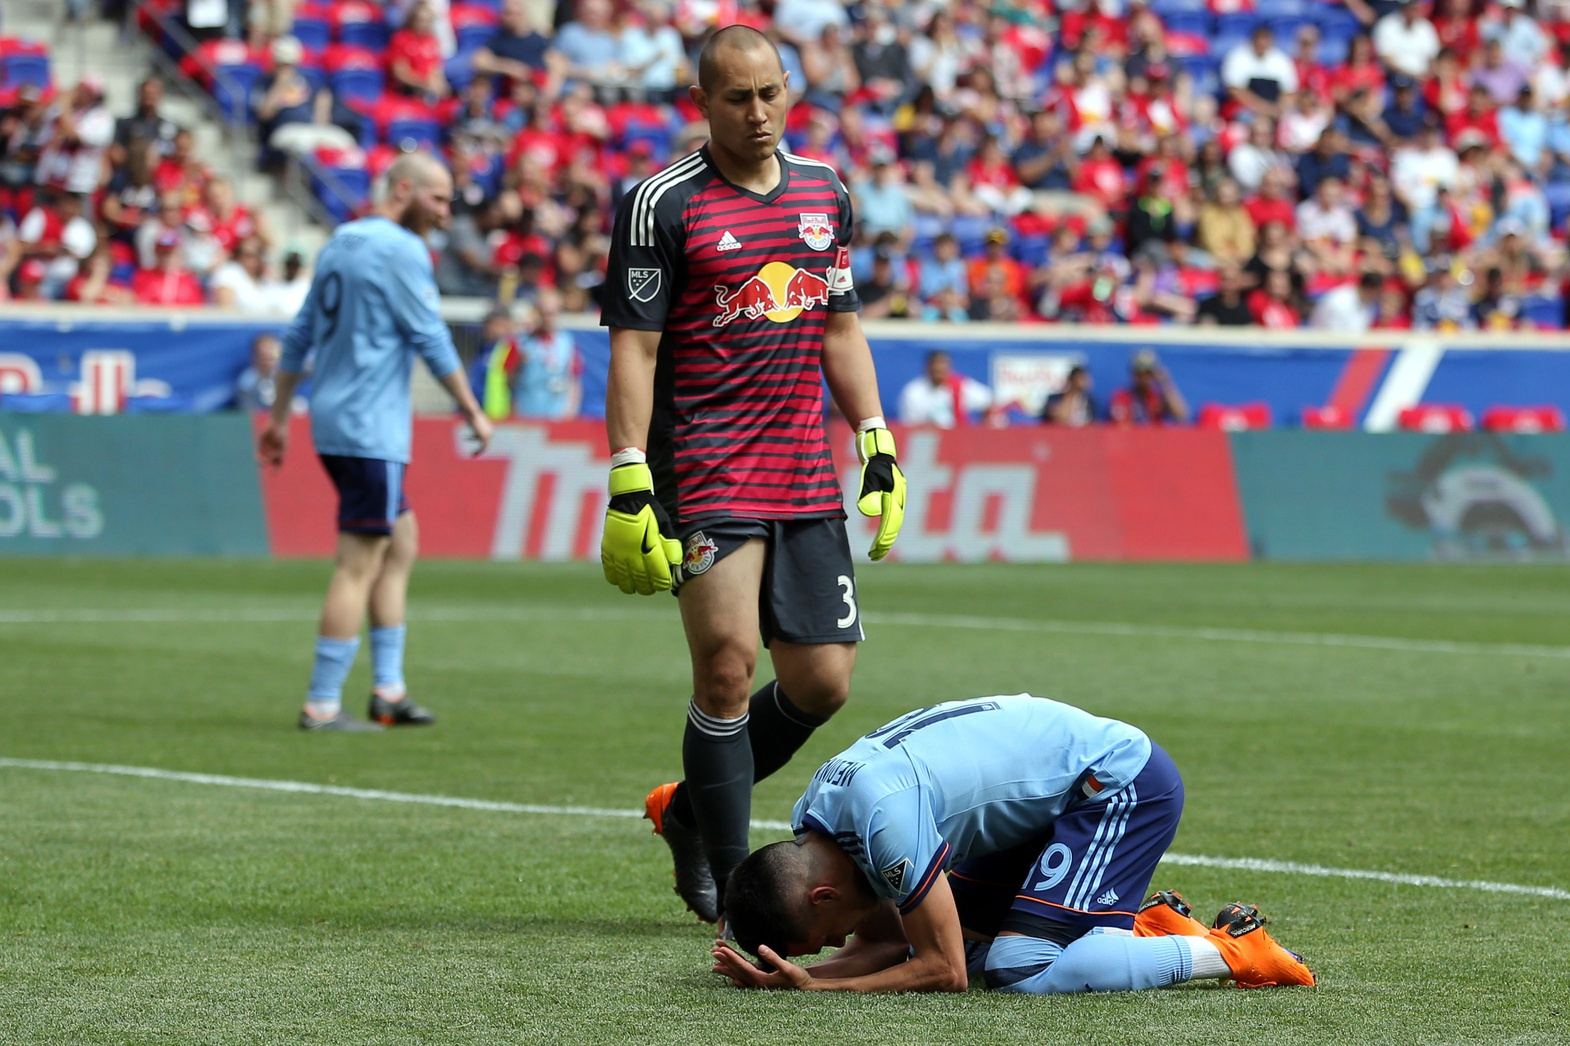 May 5, 2018; Harrison, NJ, USA; New York City FC midfielder Jesus Medina (19) reacts after missing an open header in front of New York Red Bulls goalkeeper Luis Robles (31) during the second half at Red Bull Arena. Mandatory Credit: Brad Penner-USA TODAY Sports